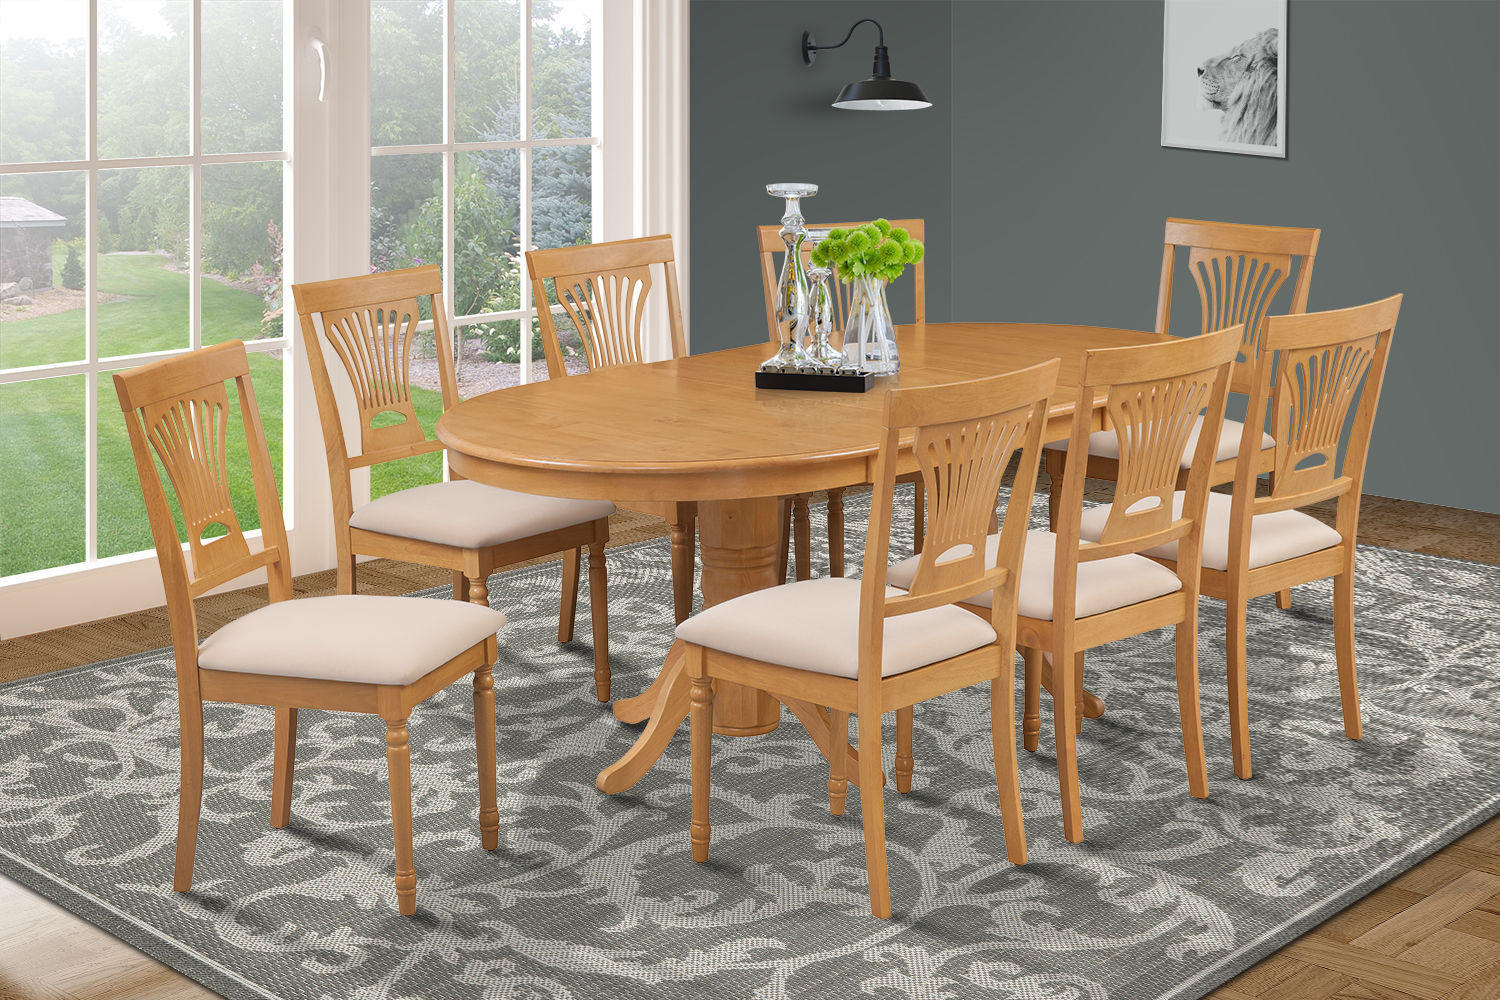 dining set with 8 chairs bean bag chair filler kmart 9 piece oval room table w soft padded